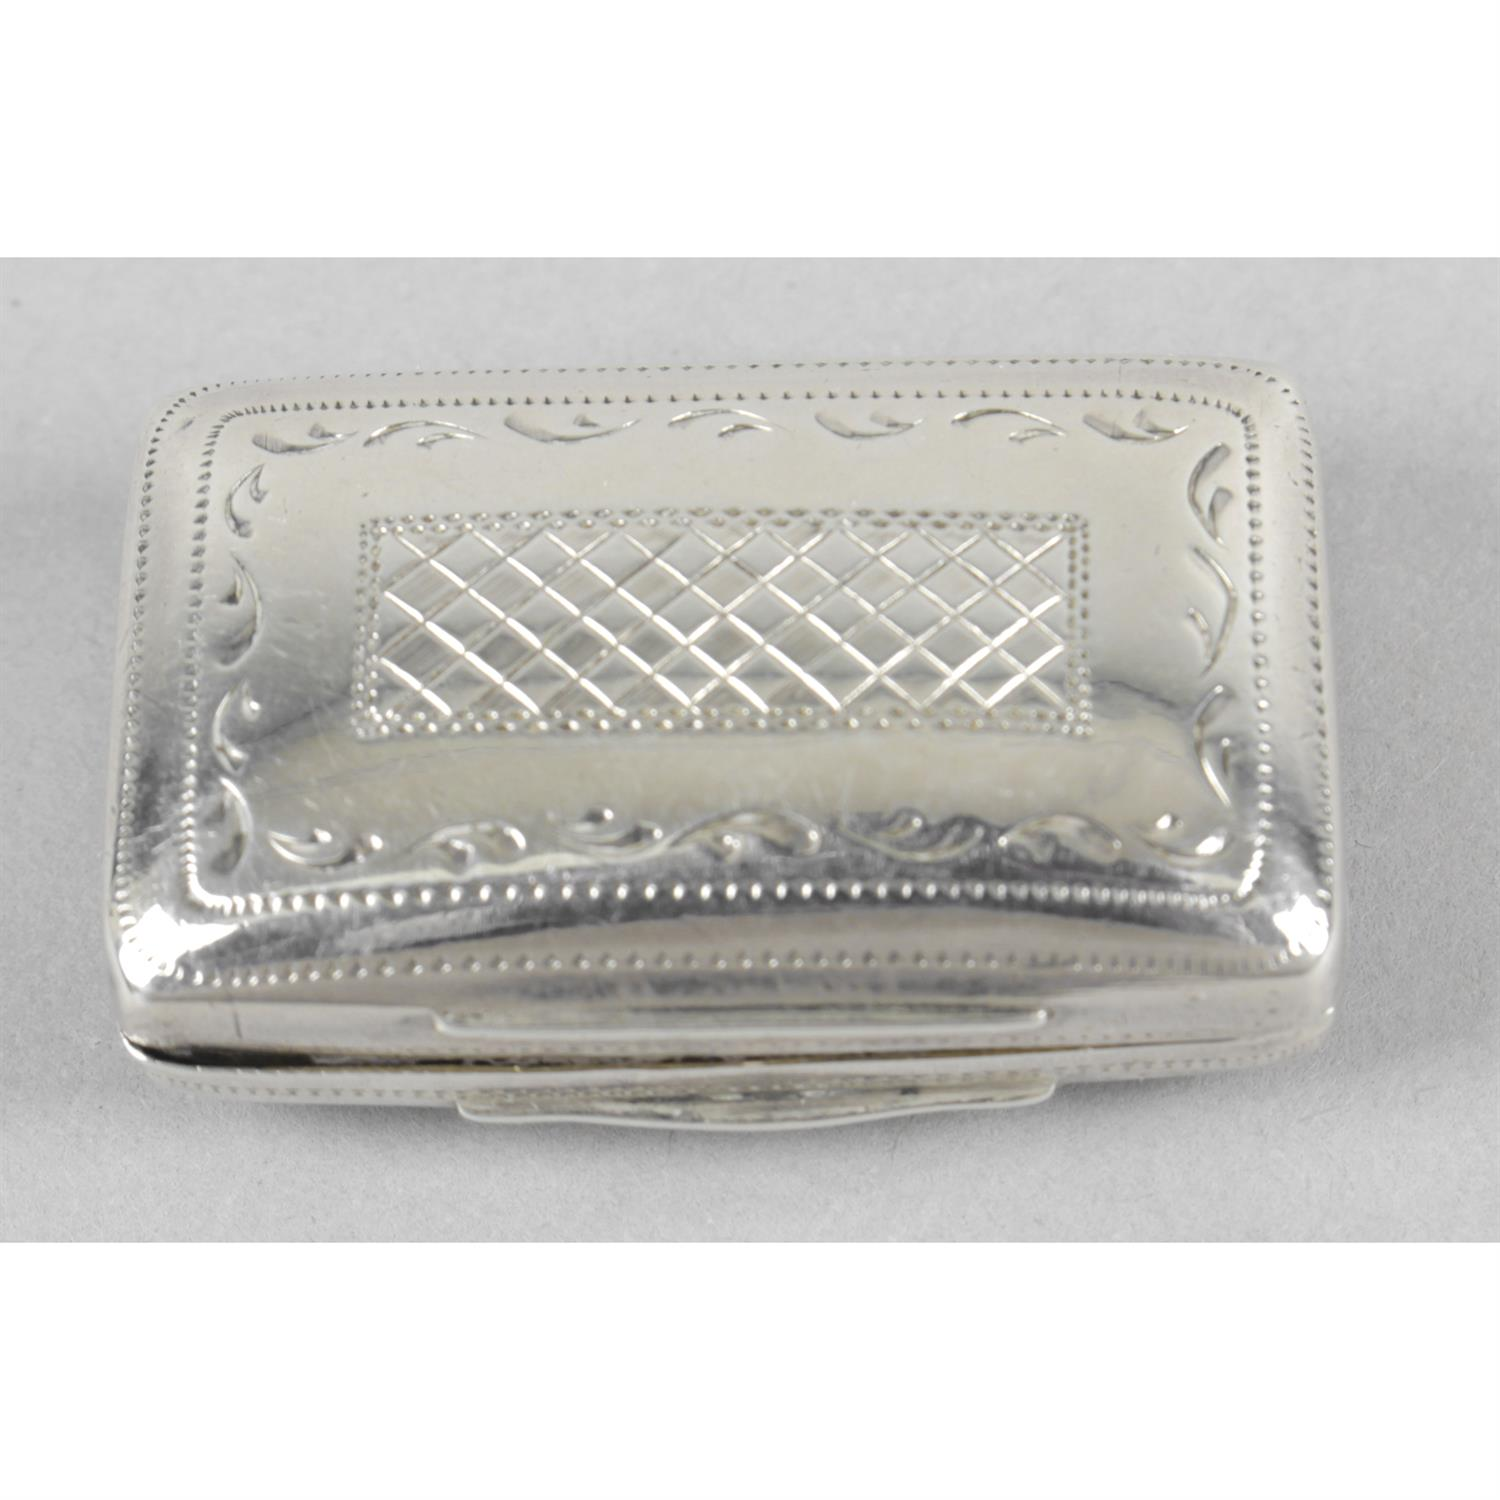 A George IV silver vinaigrette by Joseph Willmore. - Image 2 of 4